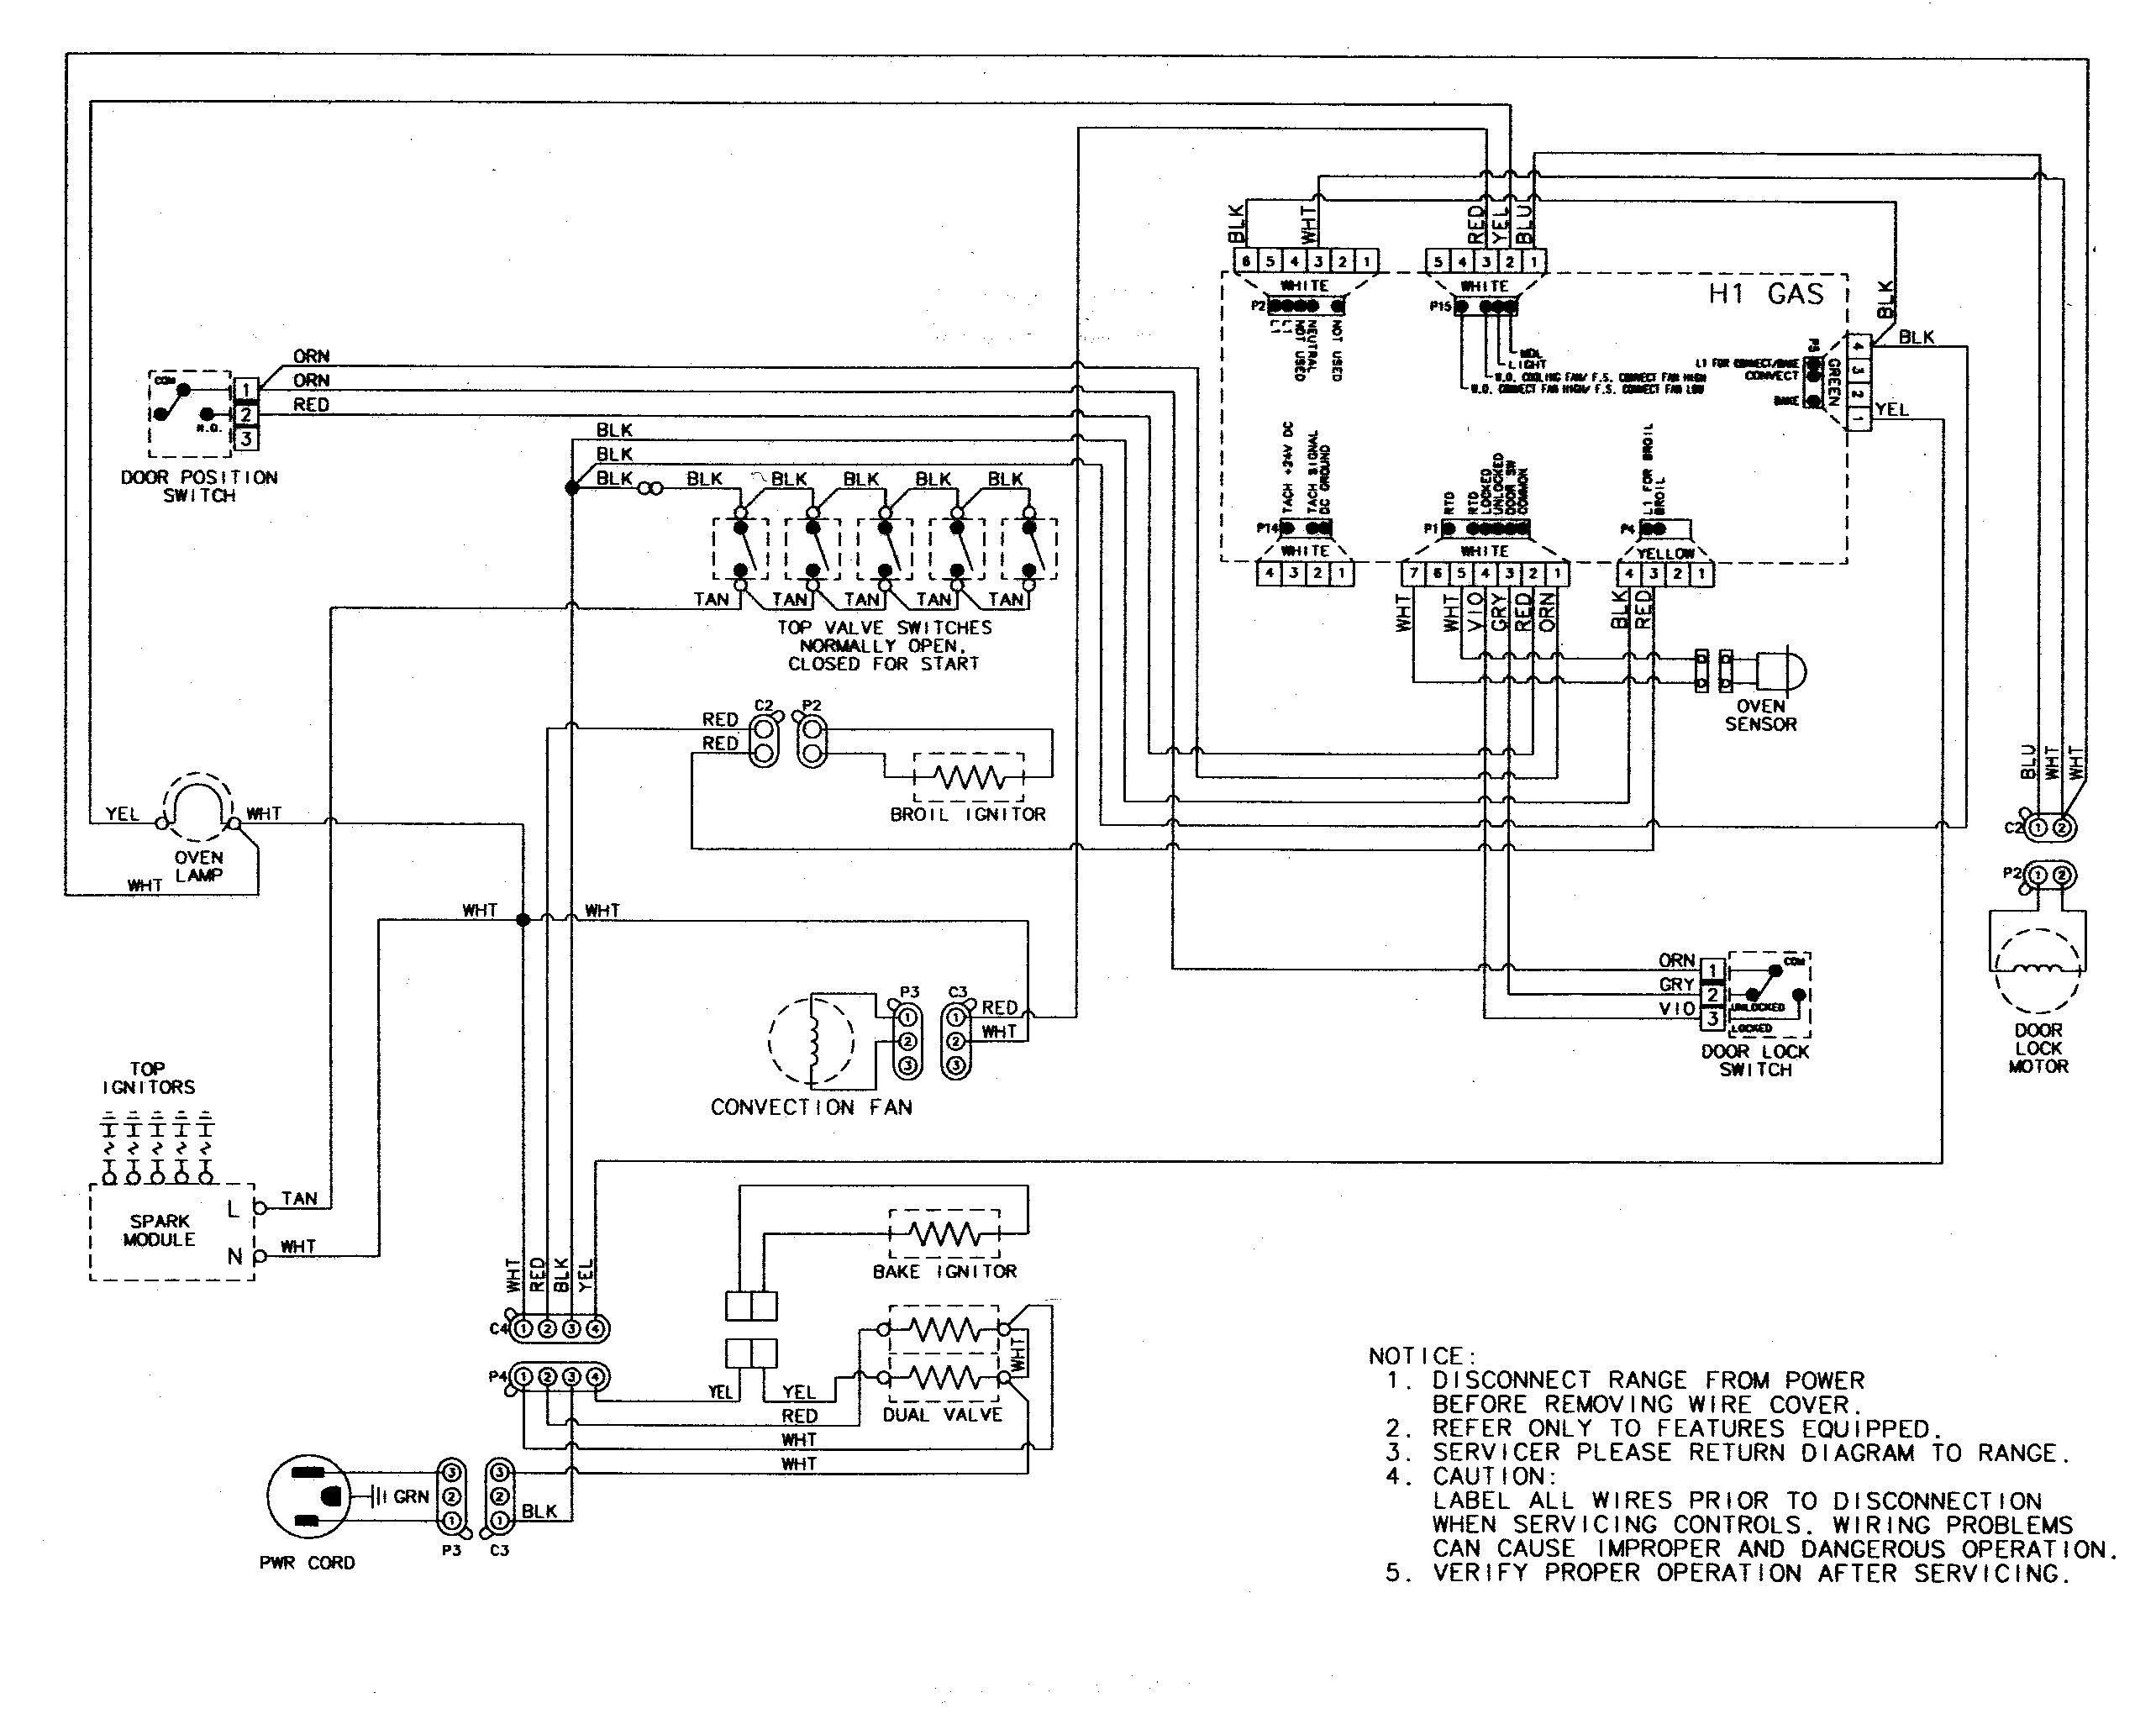 wiring diagram for a whirlpool dryer | free wiring diagram whirlpool ler4634eq2 wiring diagram whirlpool grill wiring diagram #9